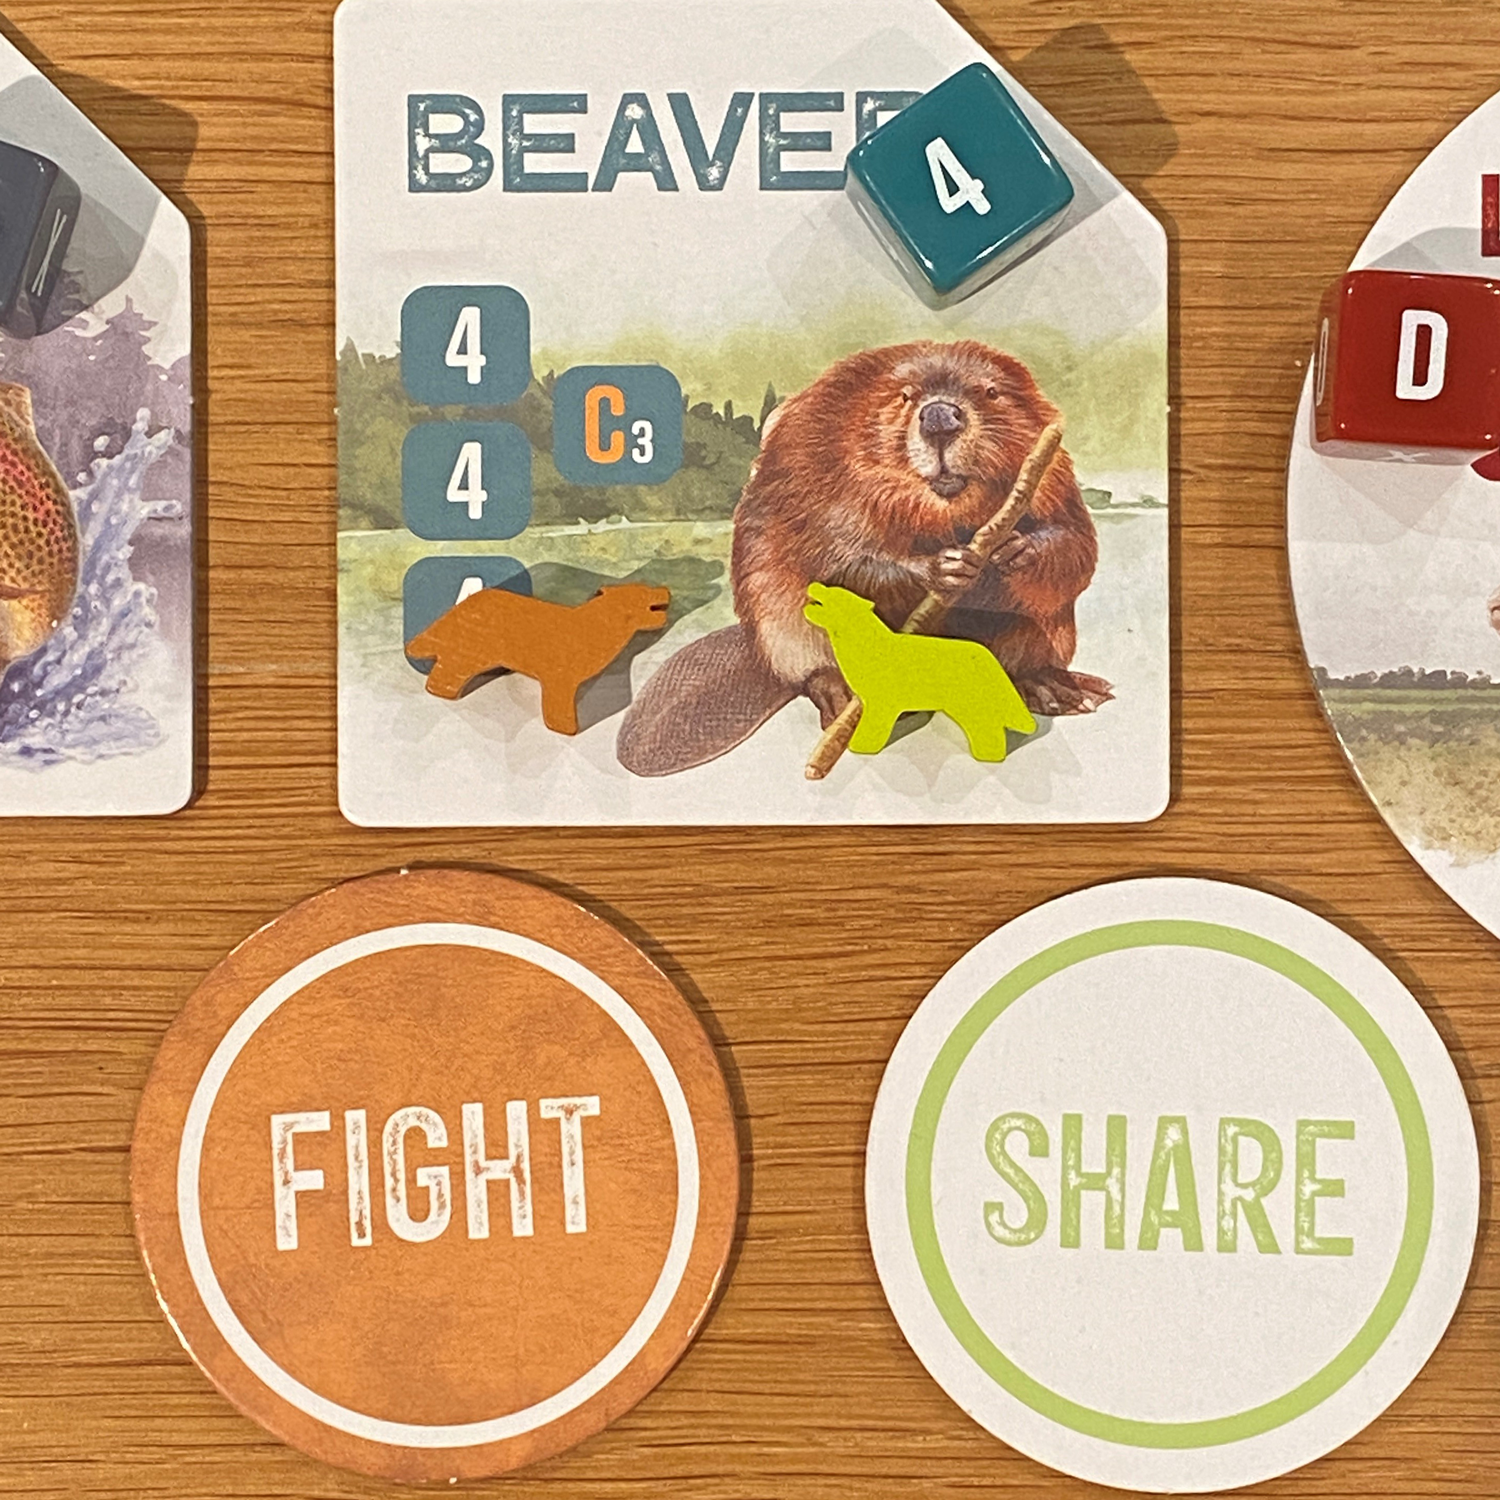 Beaver-Prey-and-Conflict-Cards-in-the-Alpha